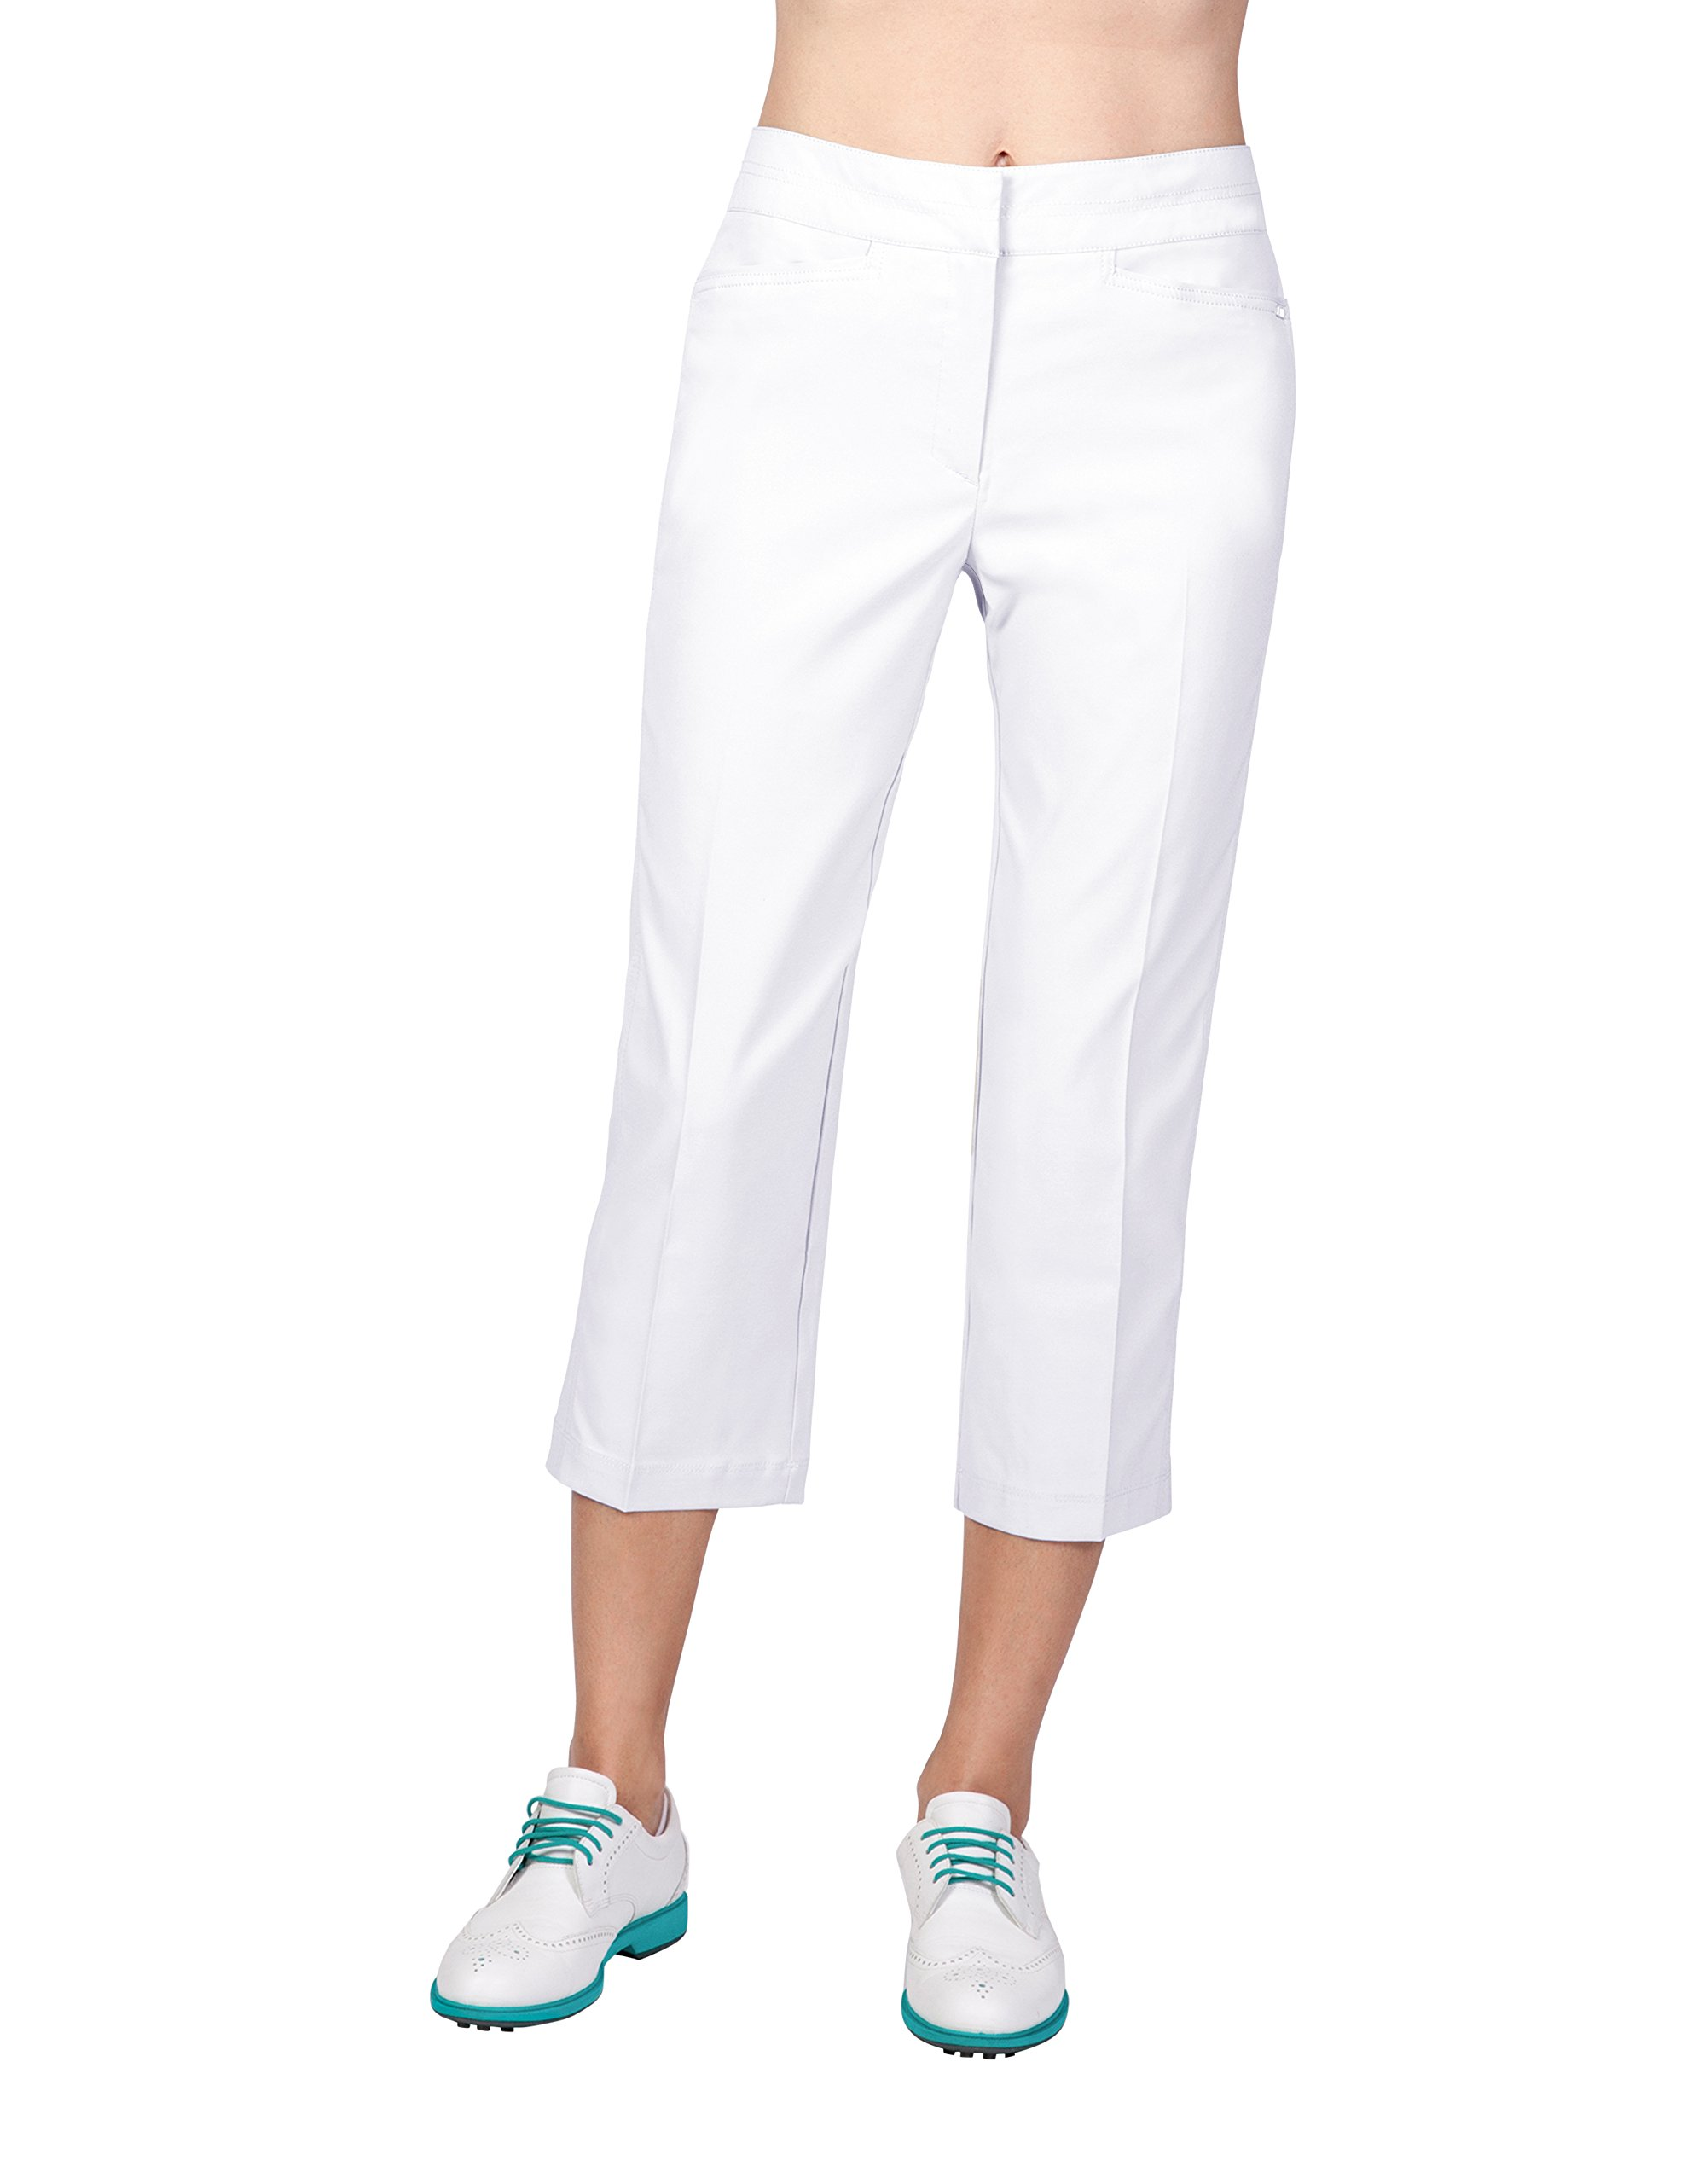 Tail Activewear Women's Classic Capri 4 White by Tail (Image #1)